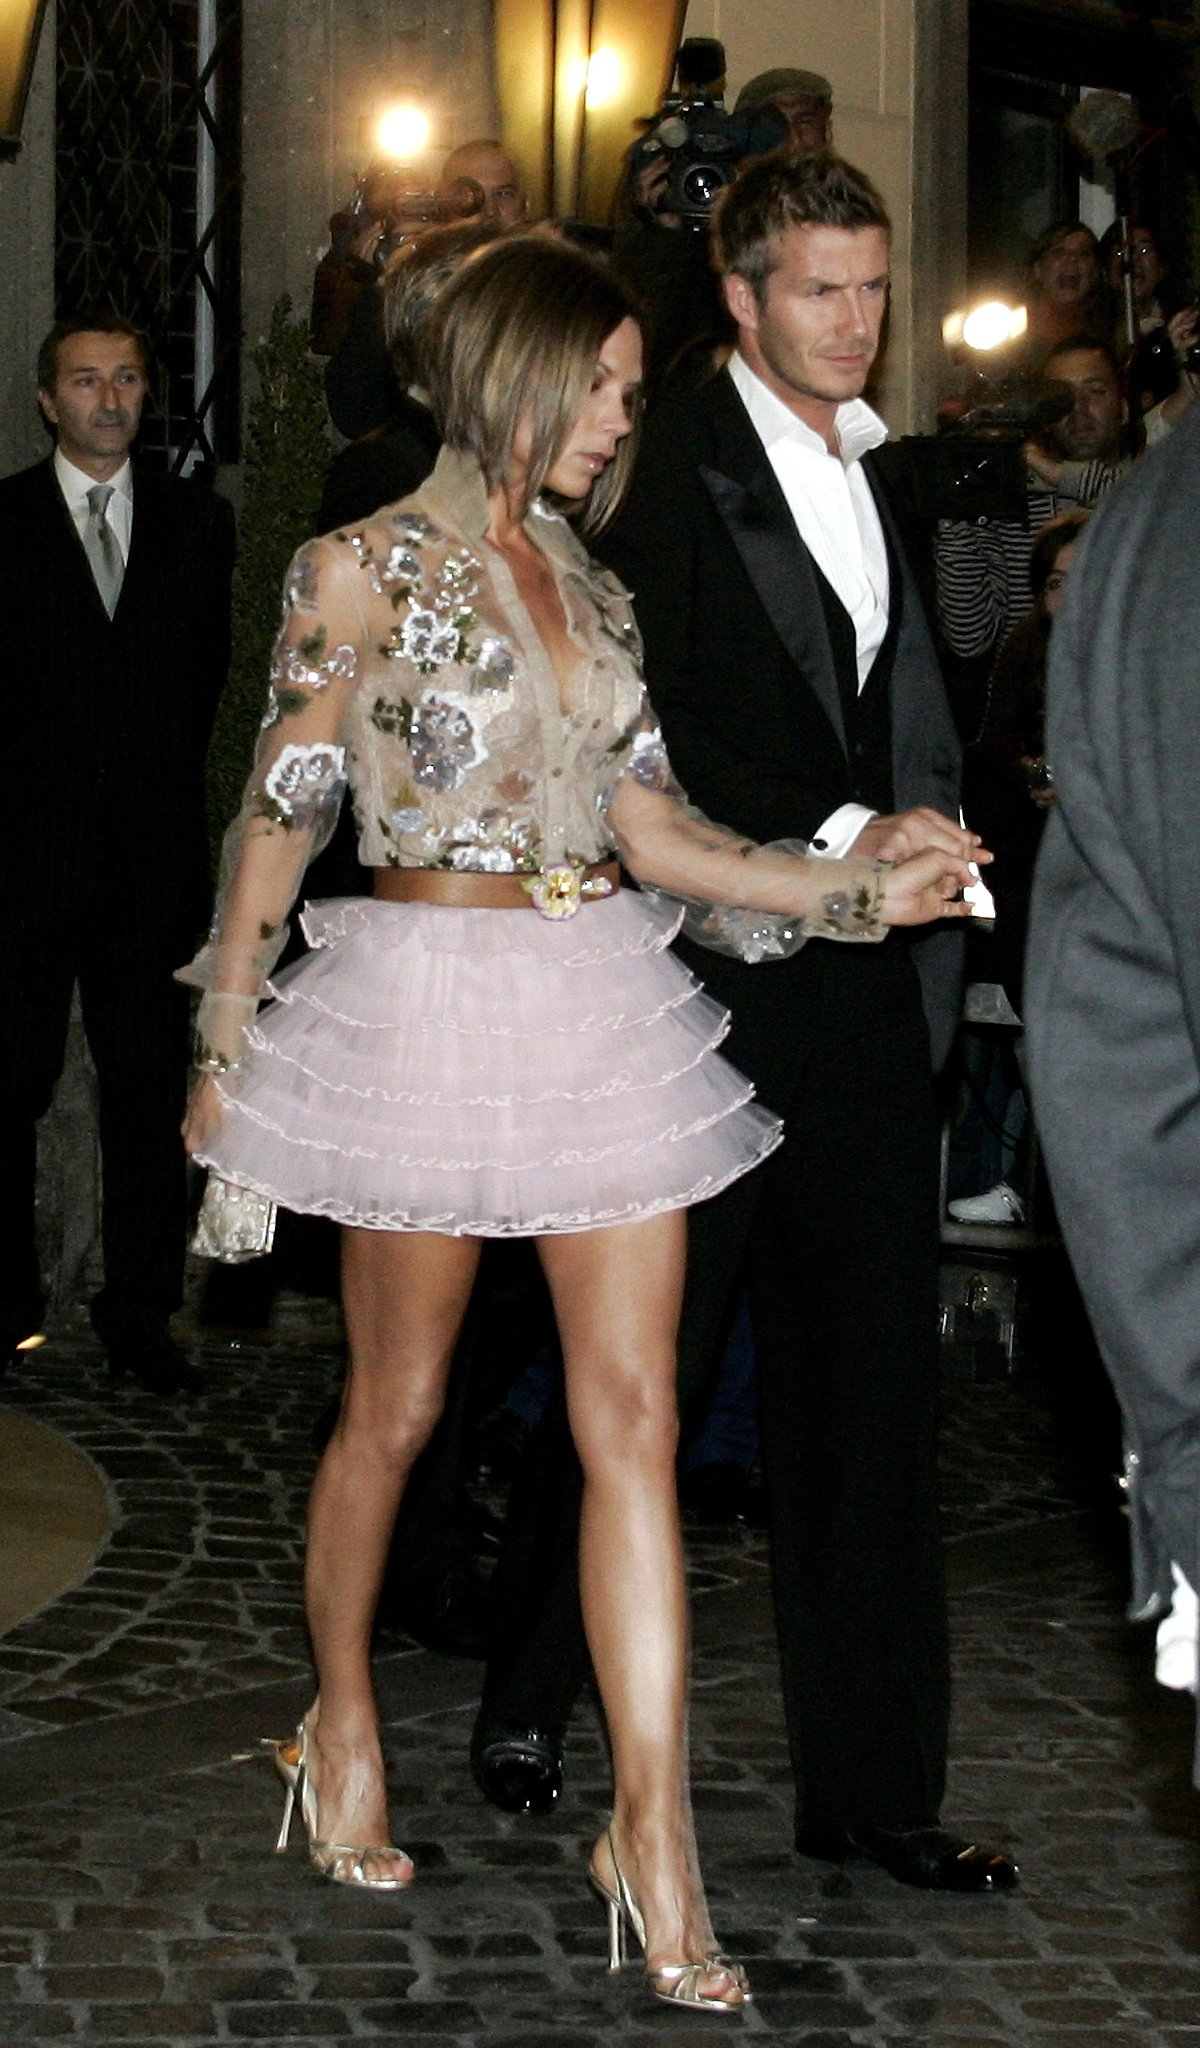 Victoria and David Beckham made their way to part of Tom Cruise and Katie Holmes's extravagant Roman wedding ceremony in November 2006.